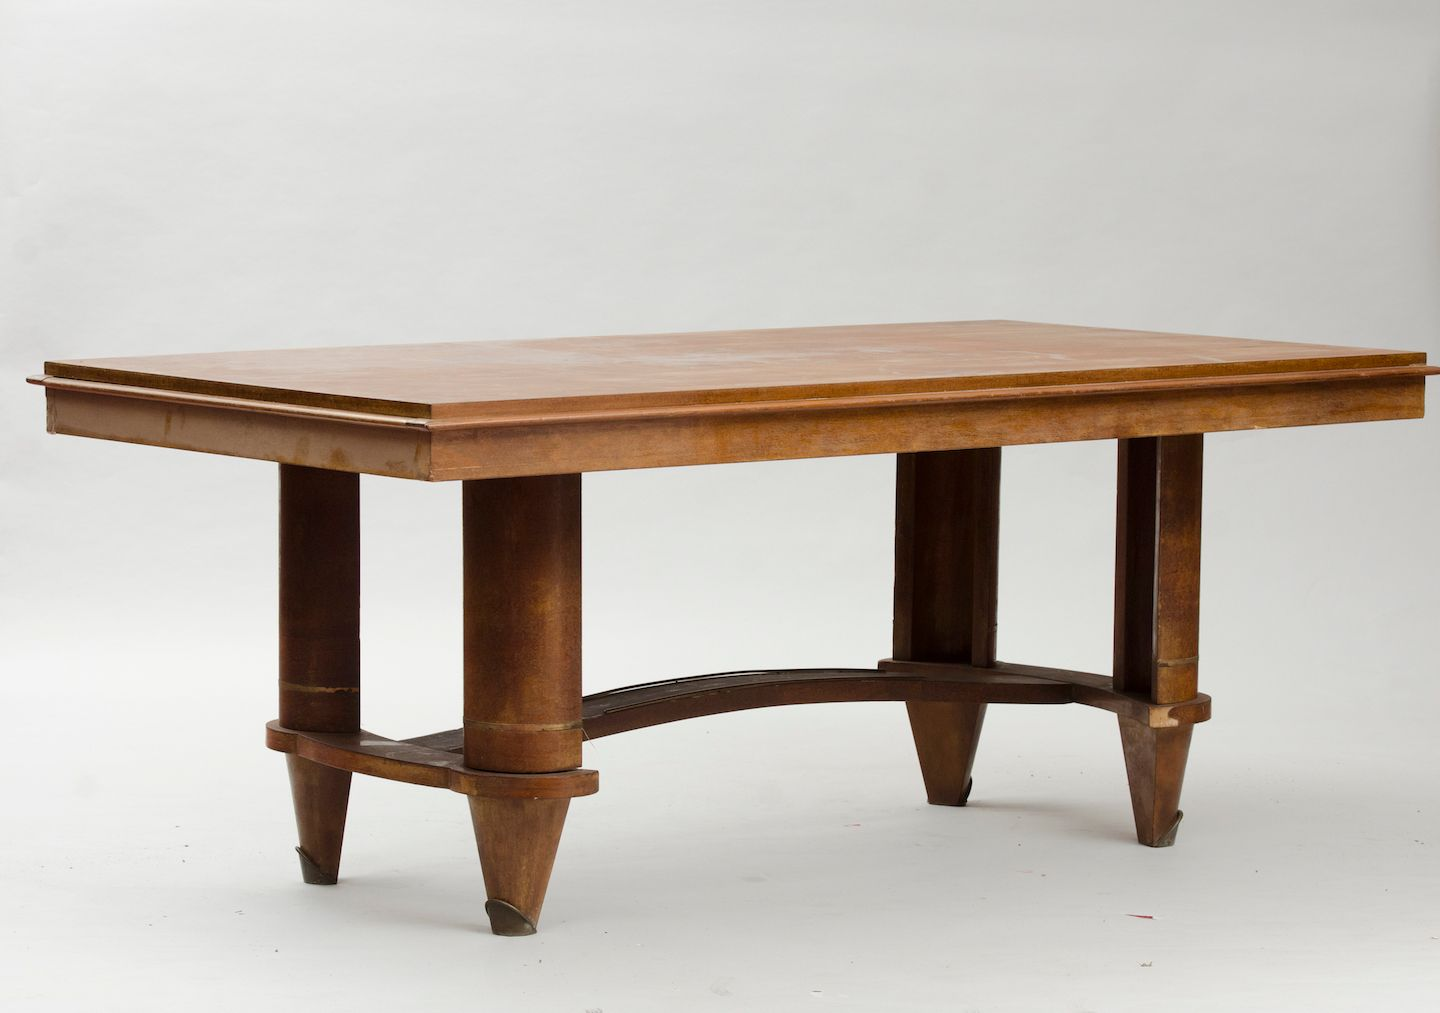 Vintage Mahogany Veneered Art Deco Dining Table